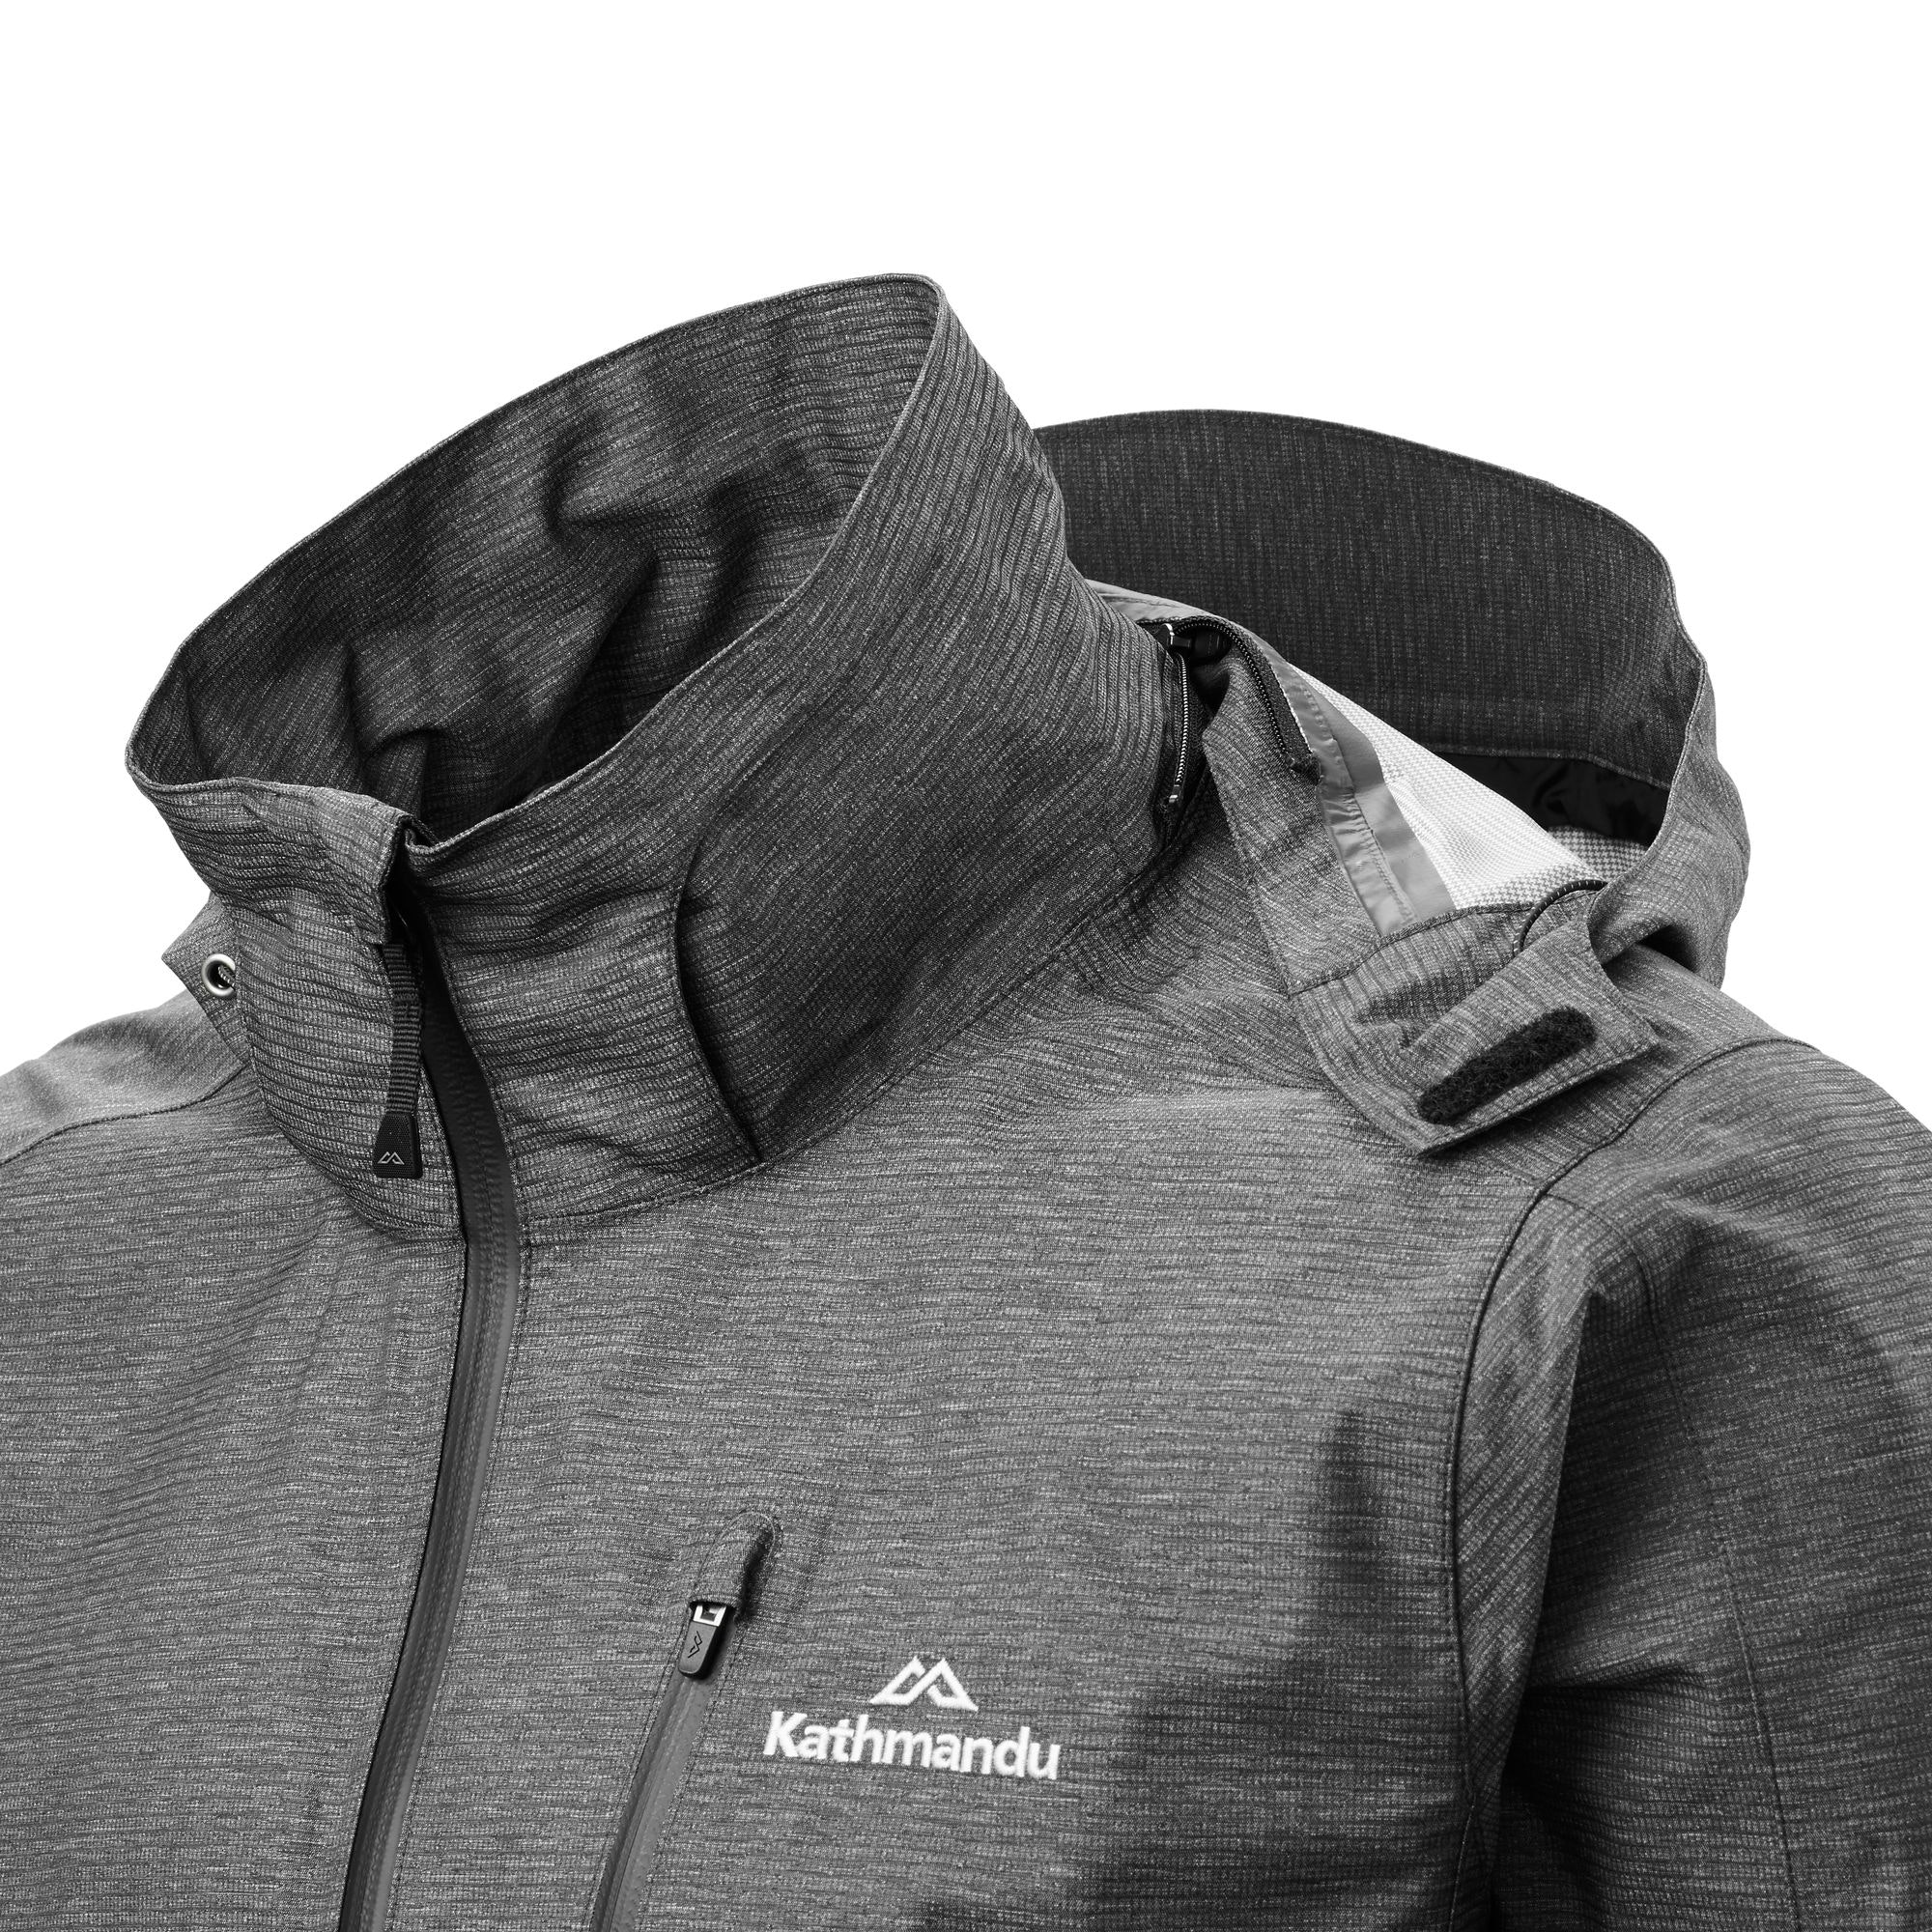 NEW-Kathmandu-Lawrence-Men-039-s-ngx-Windproof-Waterproof-Outdoor-Rain-Jacket-v2 thumbnail 9